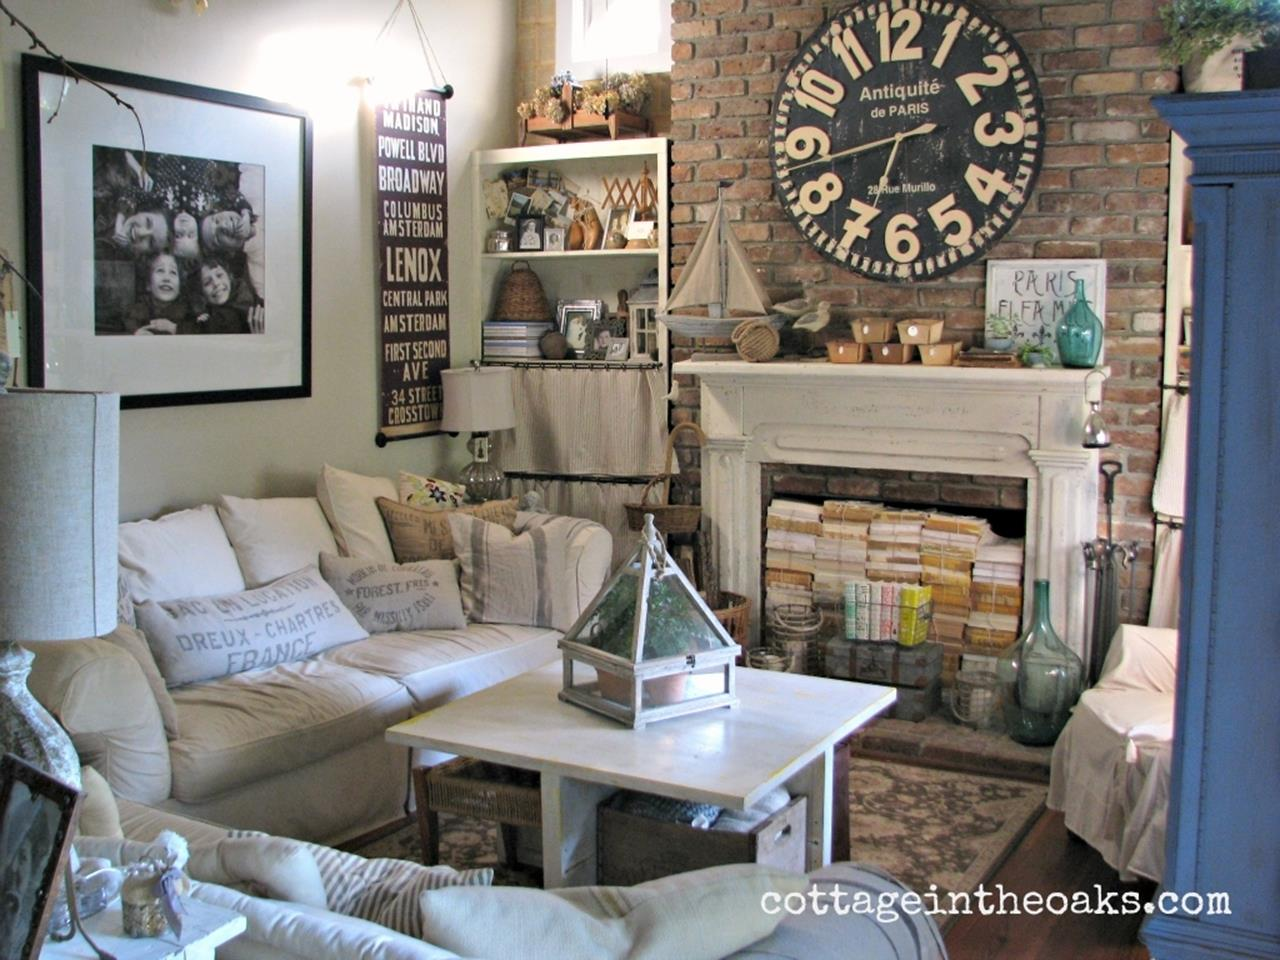 City Chic Living Room Decorating Ideas On a Budget 16